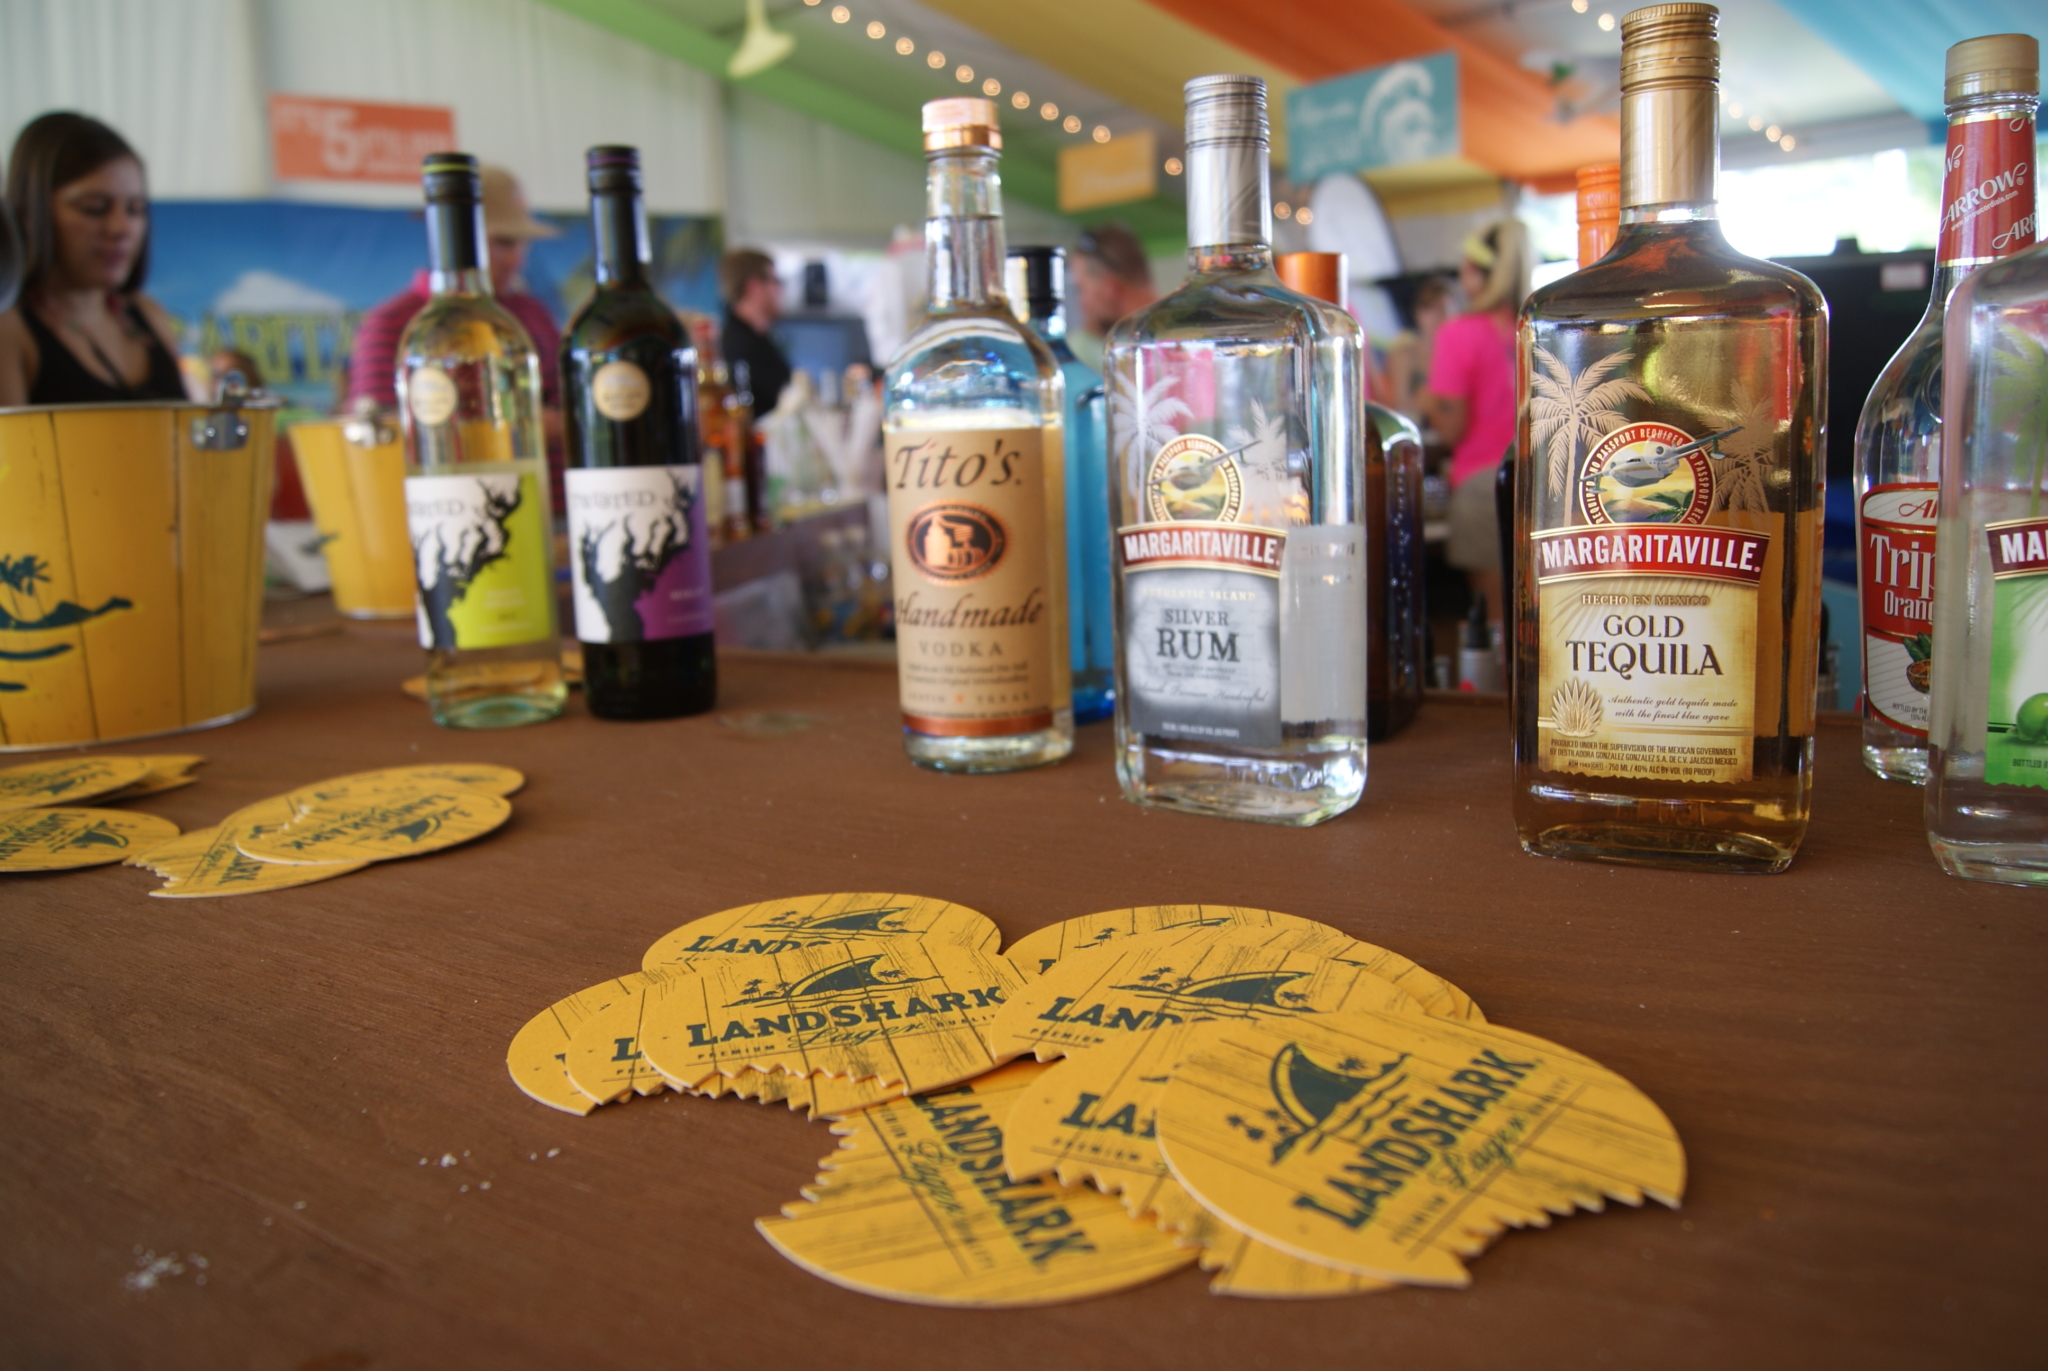 Margaritaville's Hospitality Tent at the Wyndham Championship